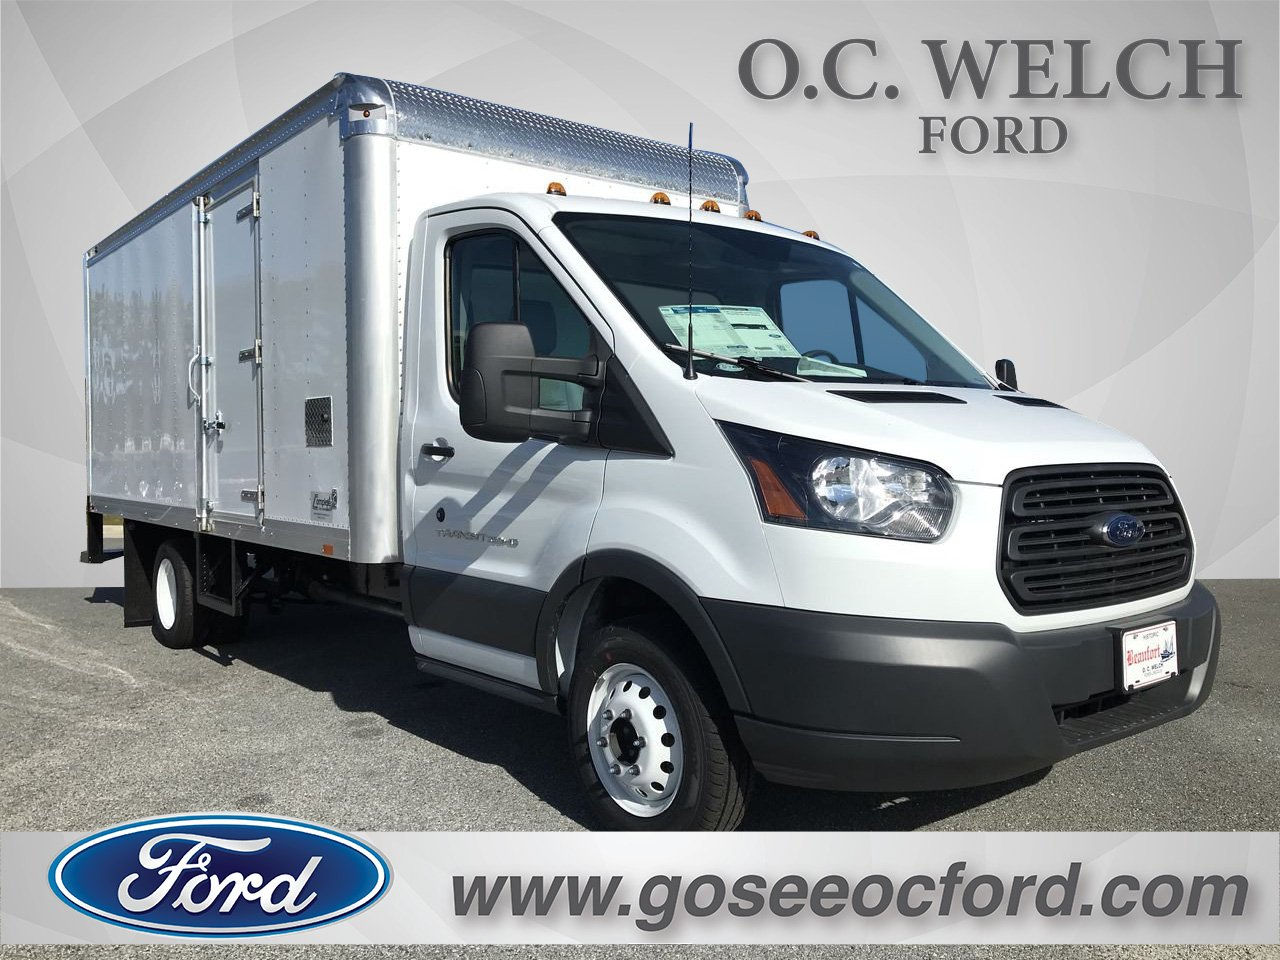 2018 Ford Transit-350 Cab Chassis Cab/Chassis